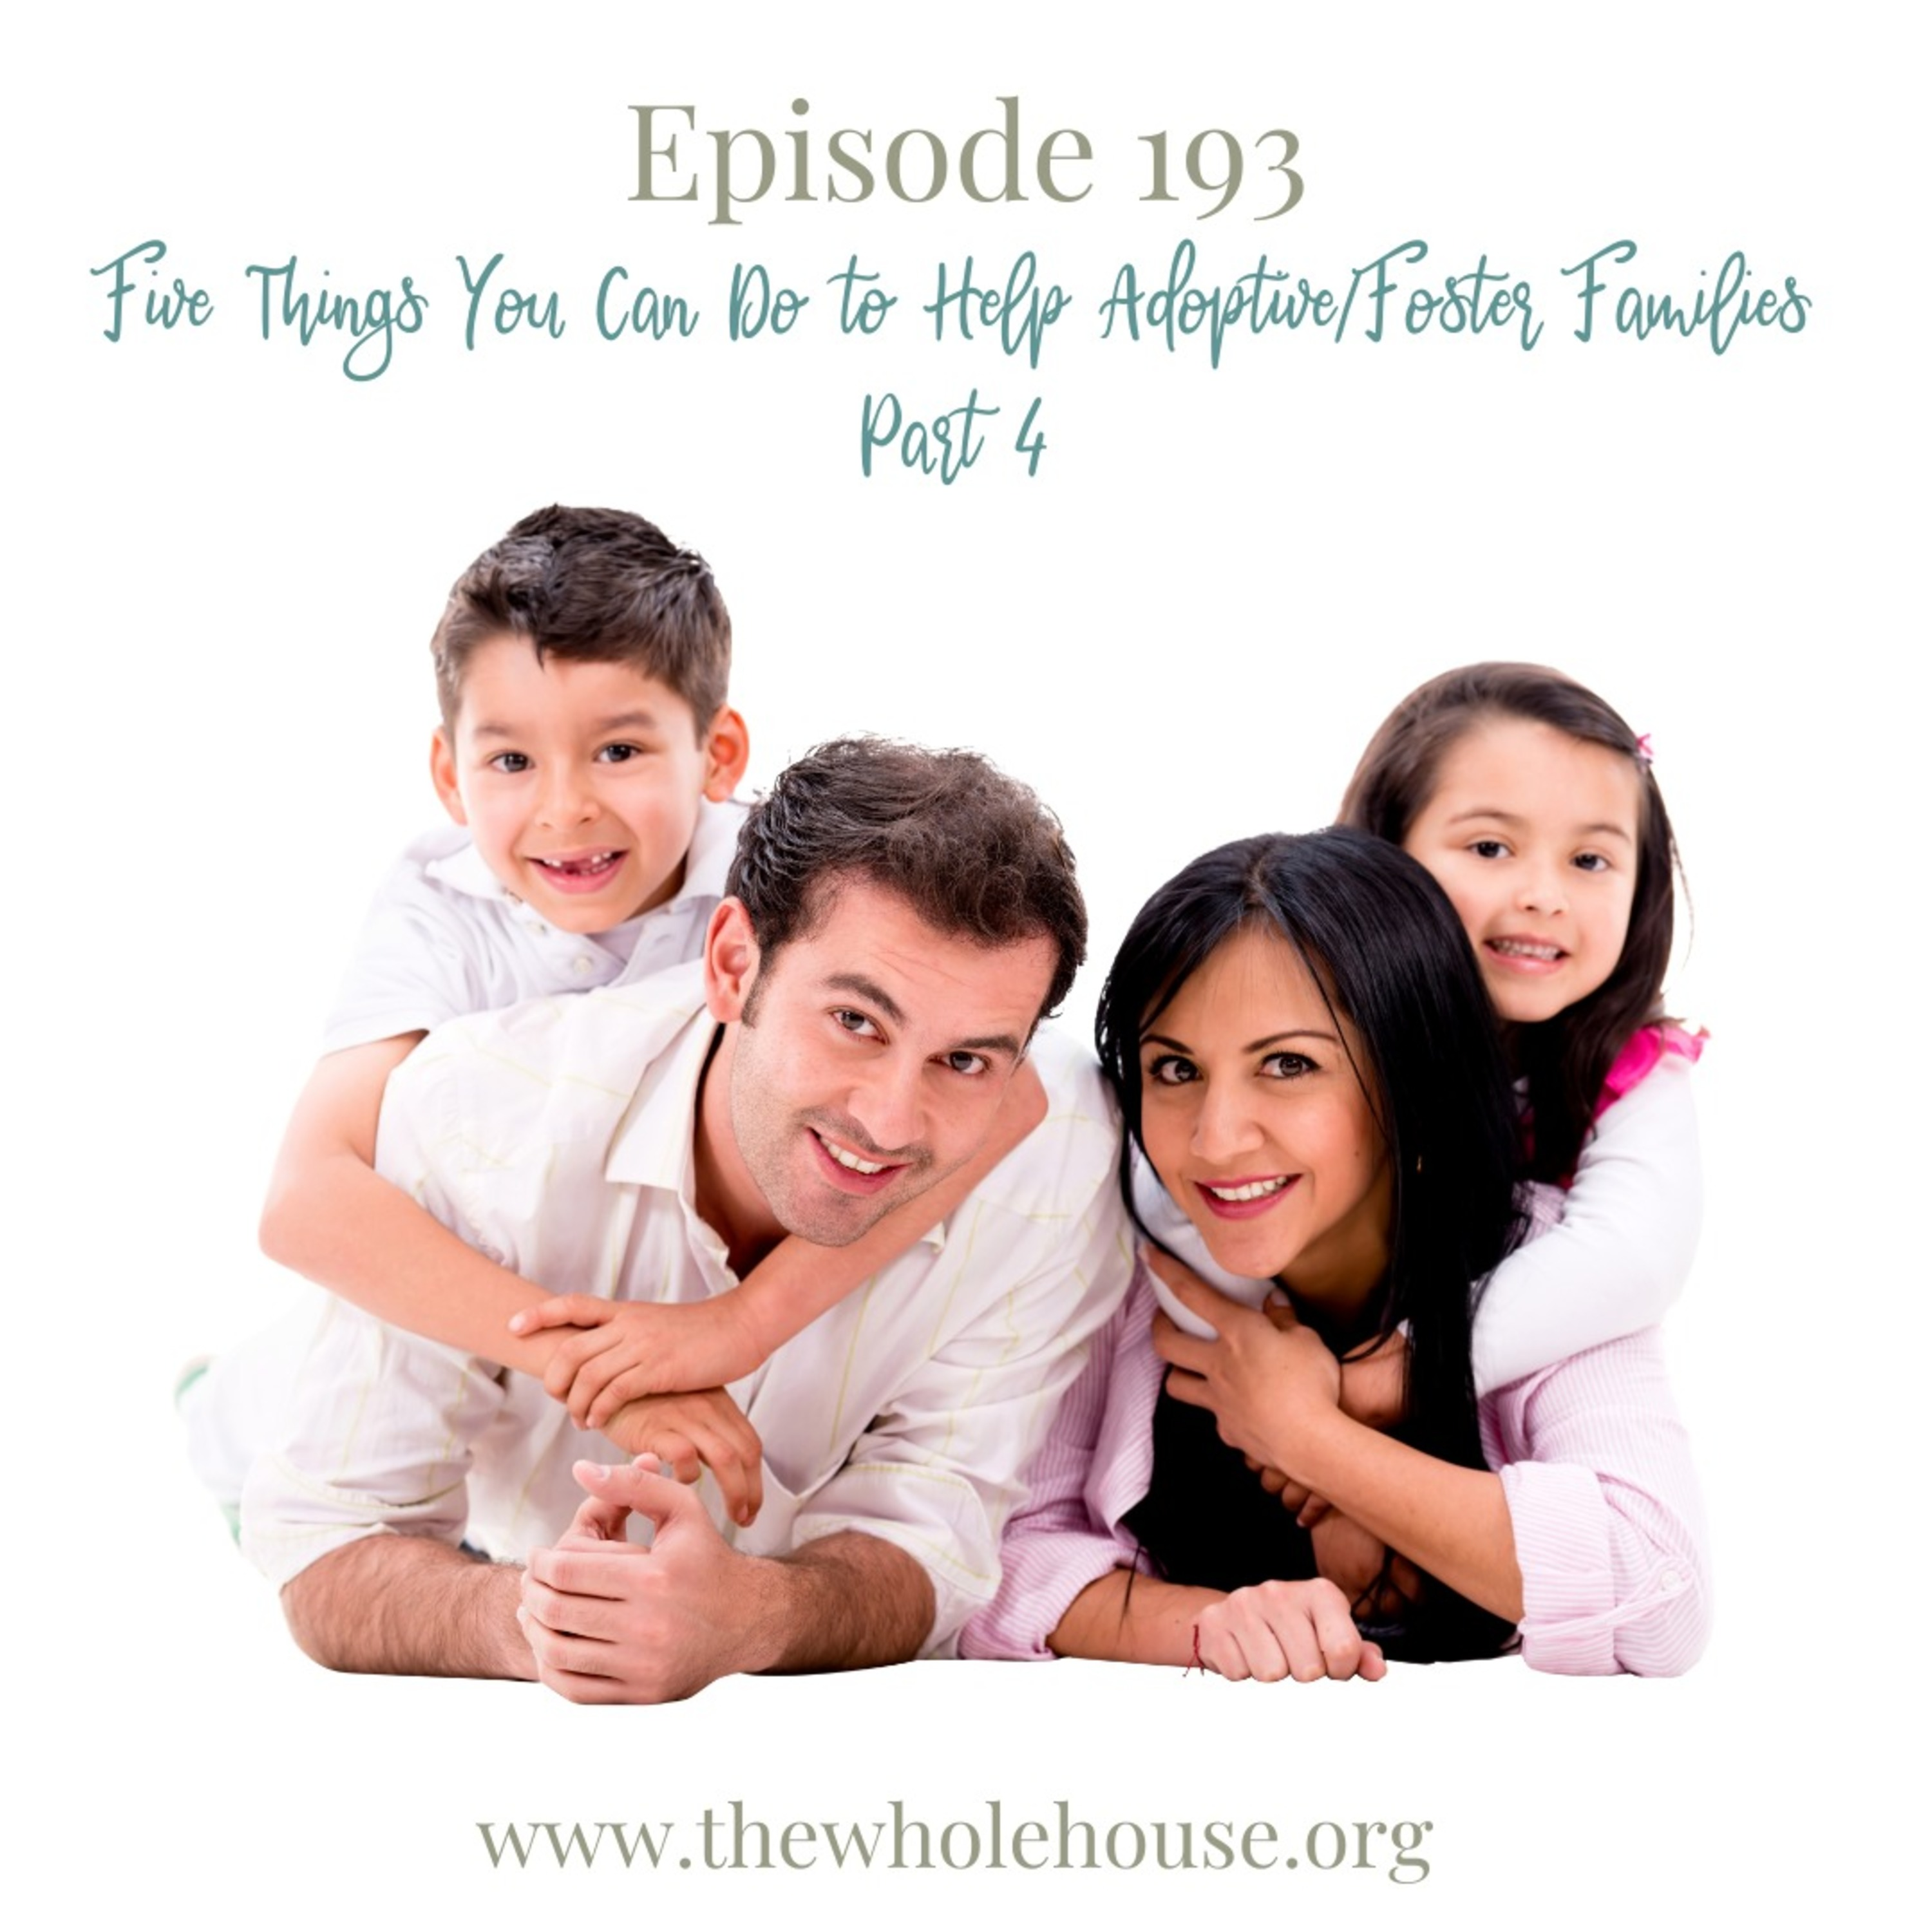 FIVE THINGS YOU CAN DO TO HELP ADOPTIVE/FOSTER FAMILIES PART 4